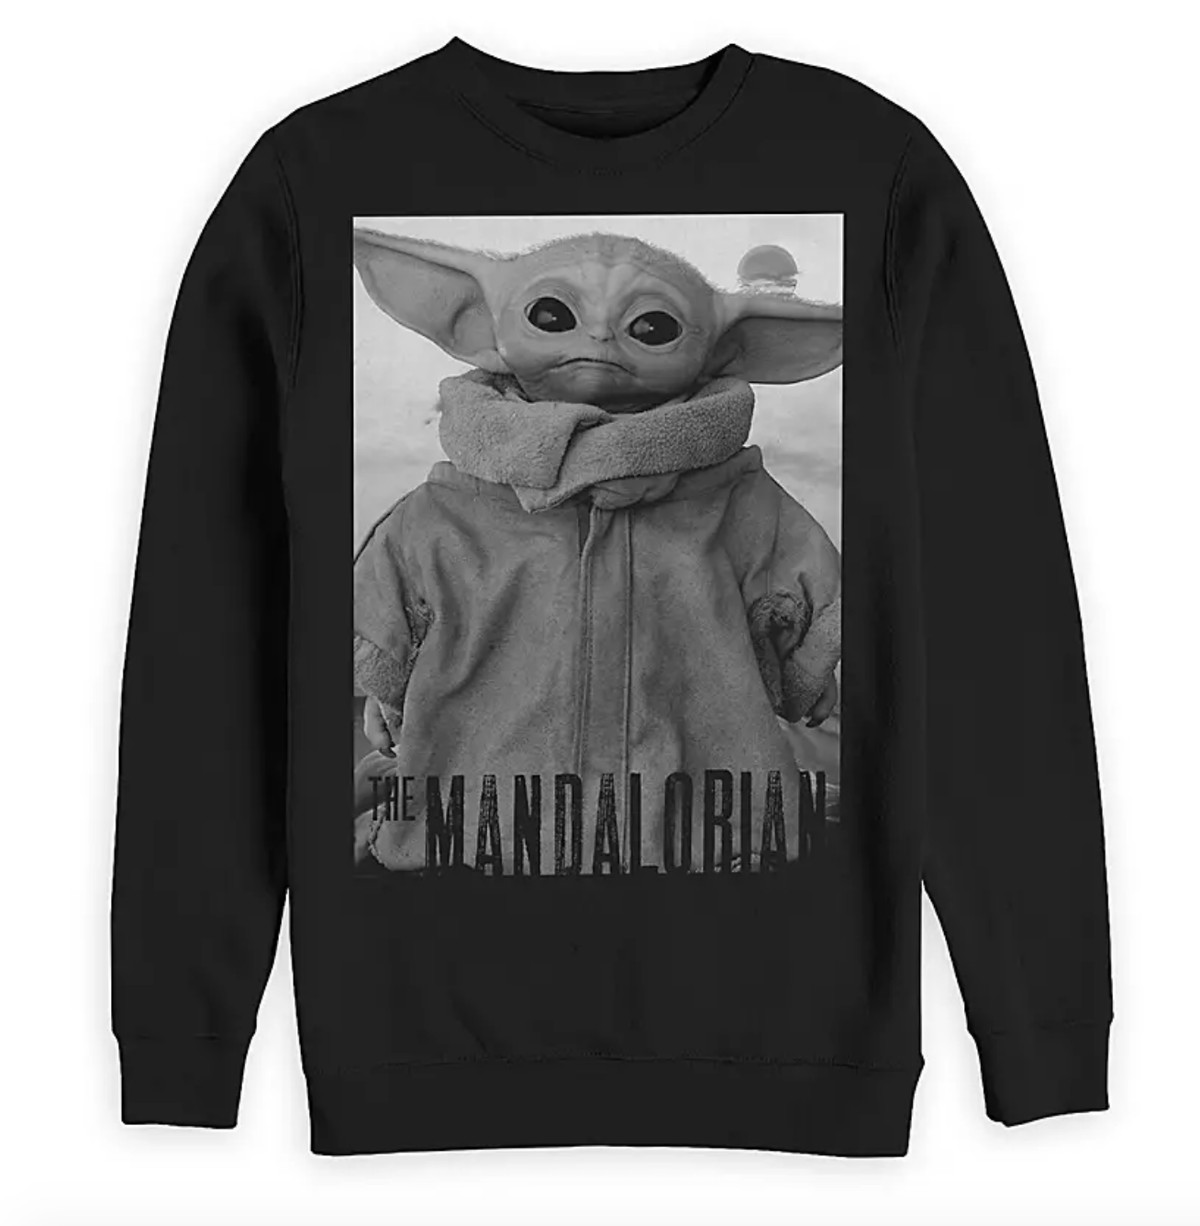 A sweatshirt featuring a black-and-white image of Baby Yoda